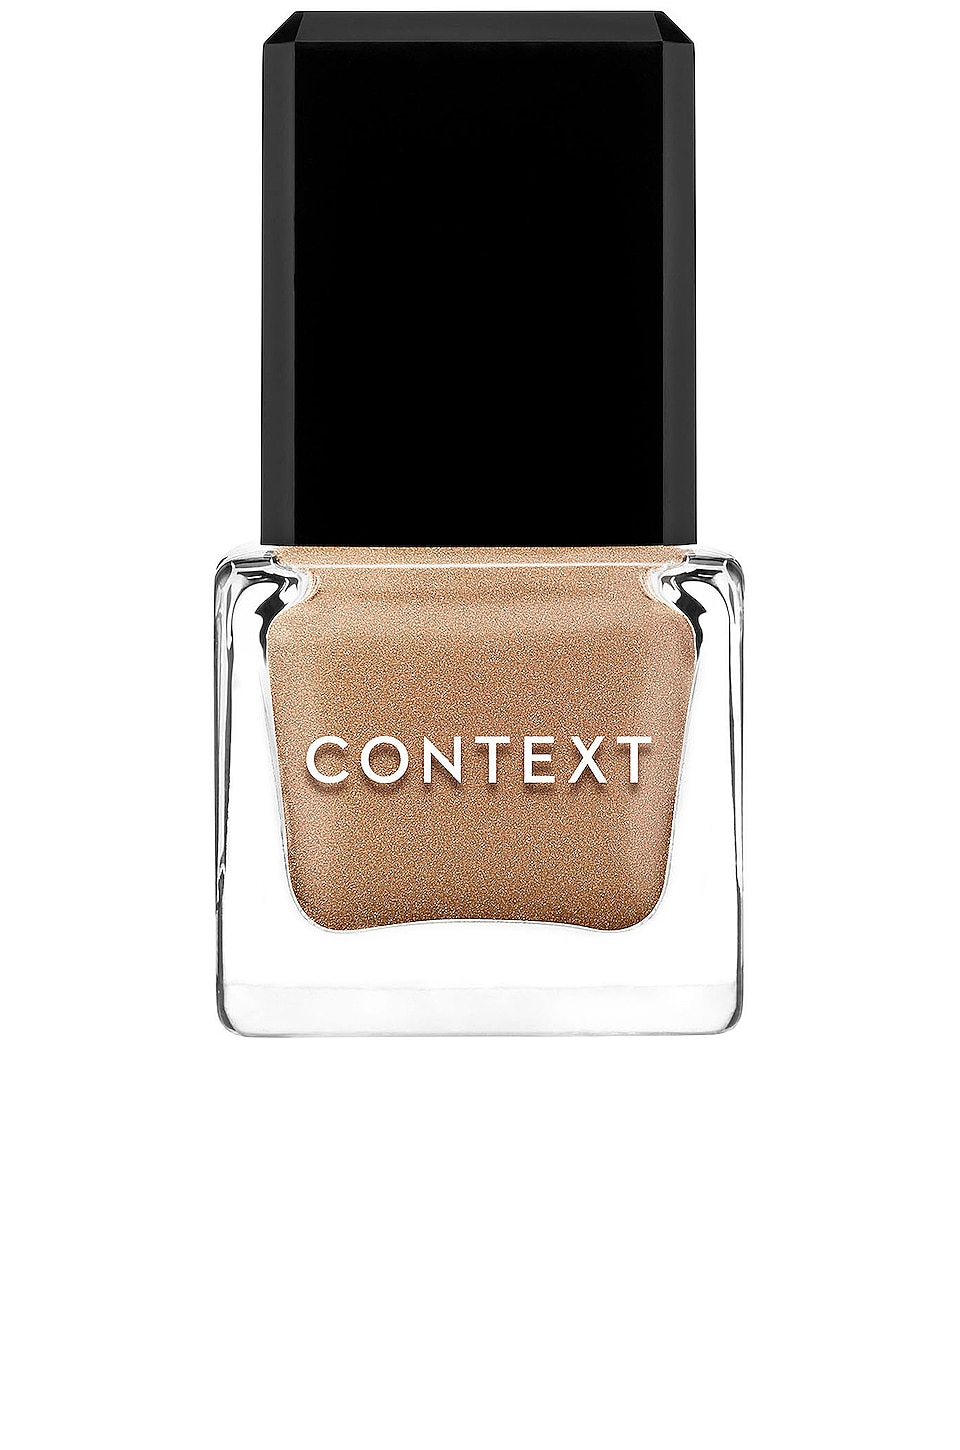 Context Nail Lacquer in Rocket Queen